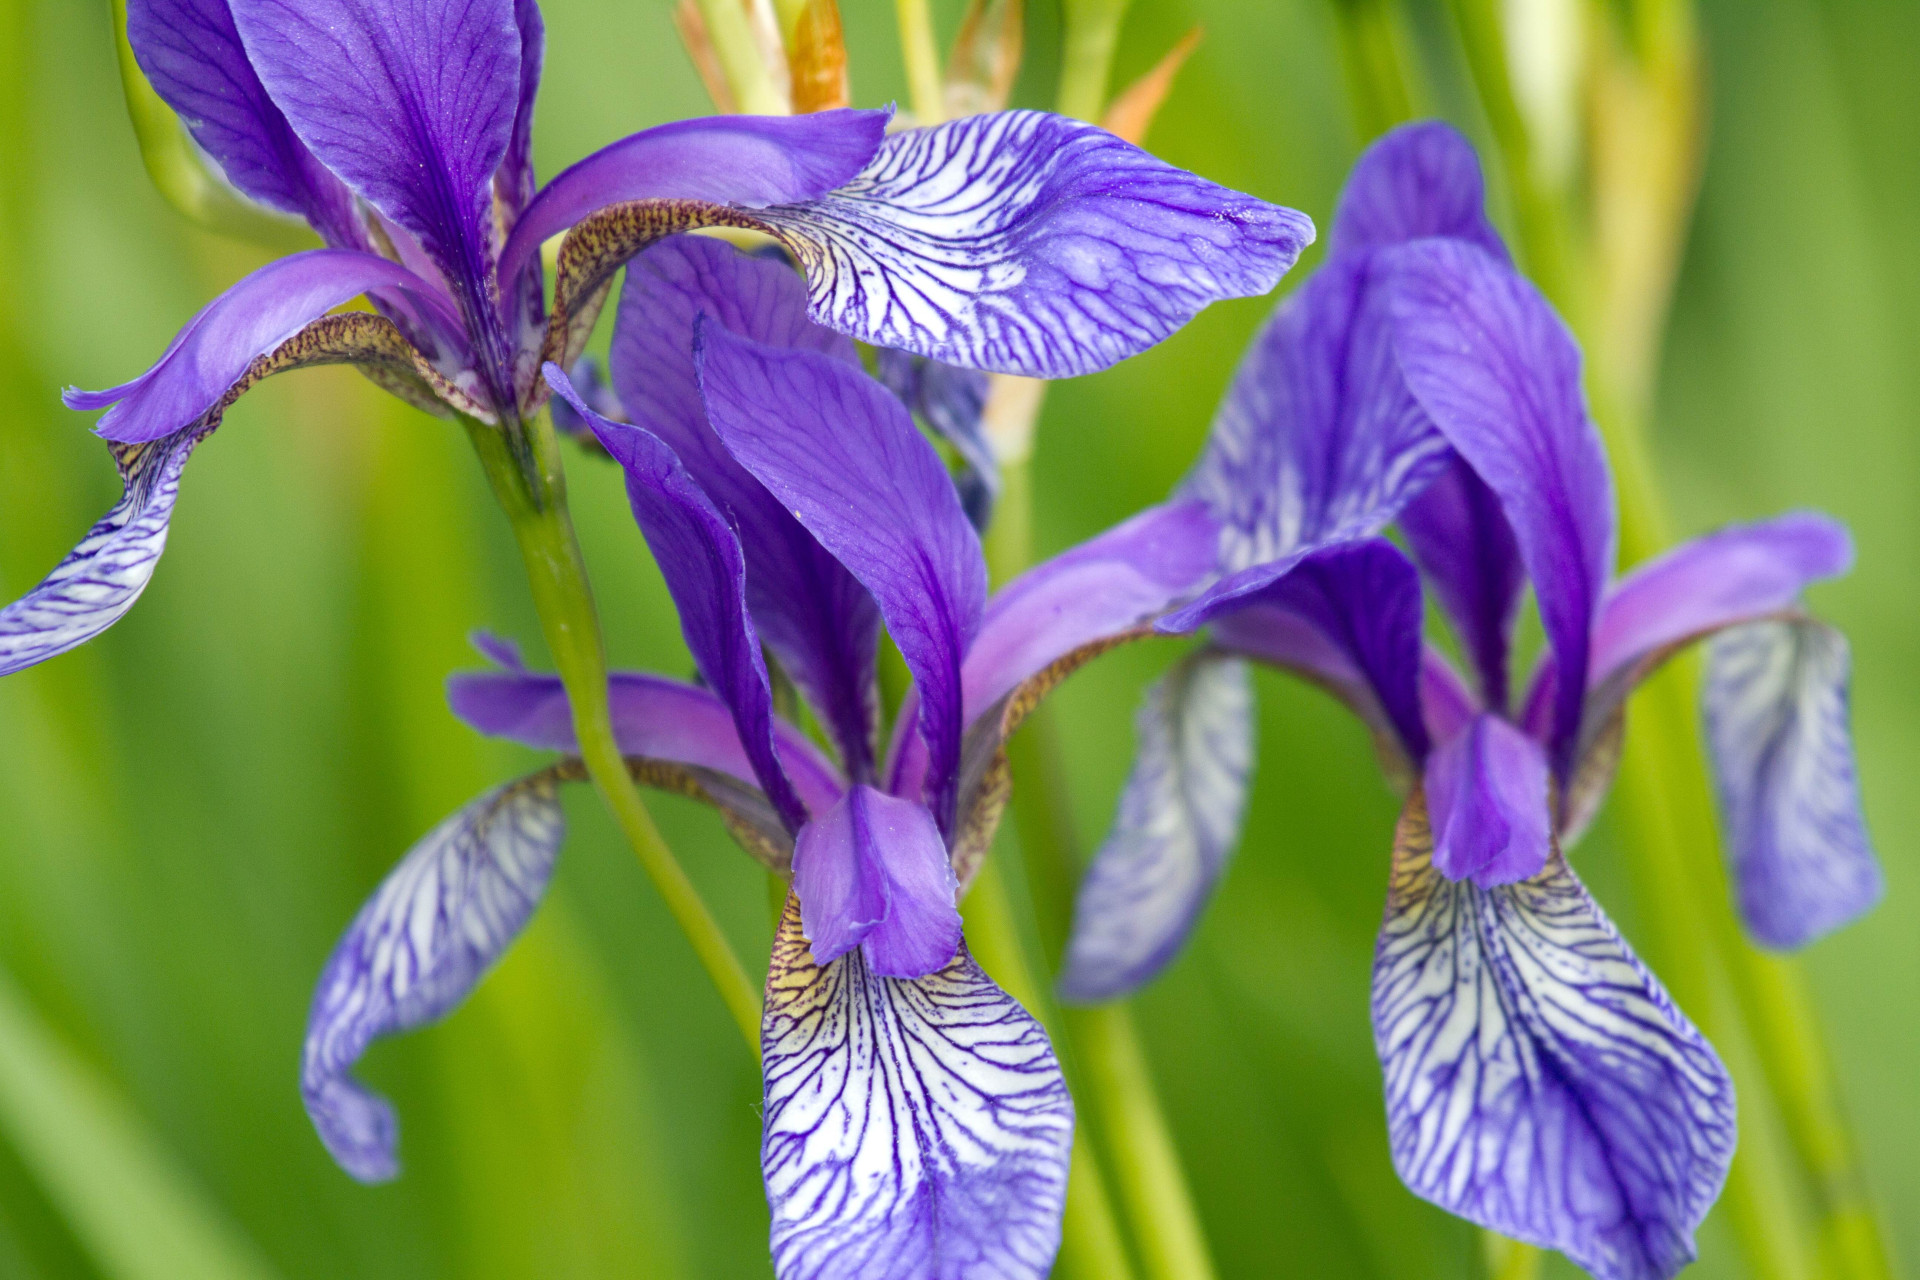 Siberian Iris at the Inzinger Gaisau